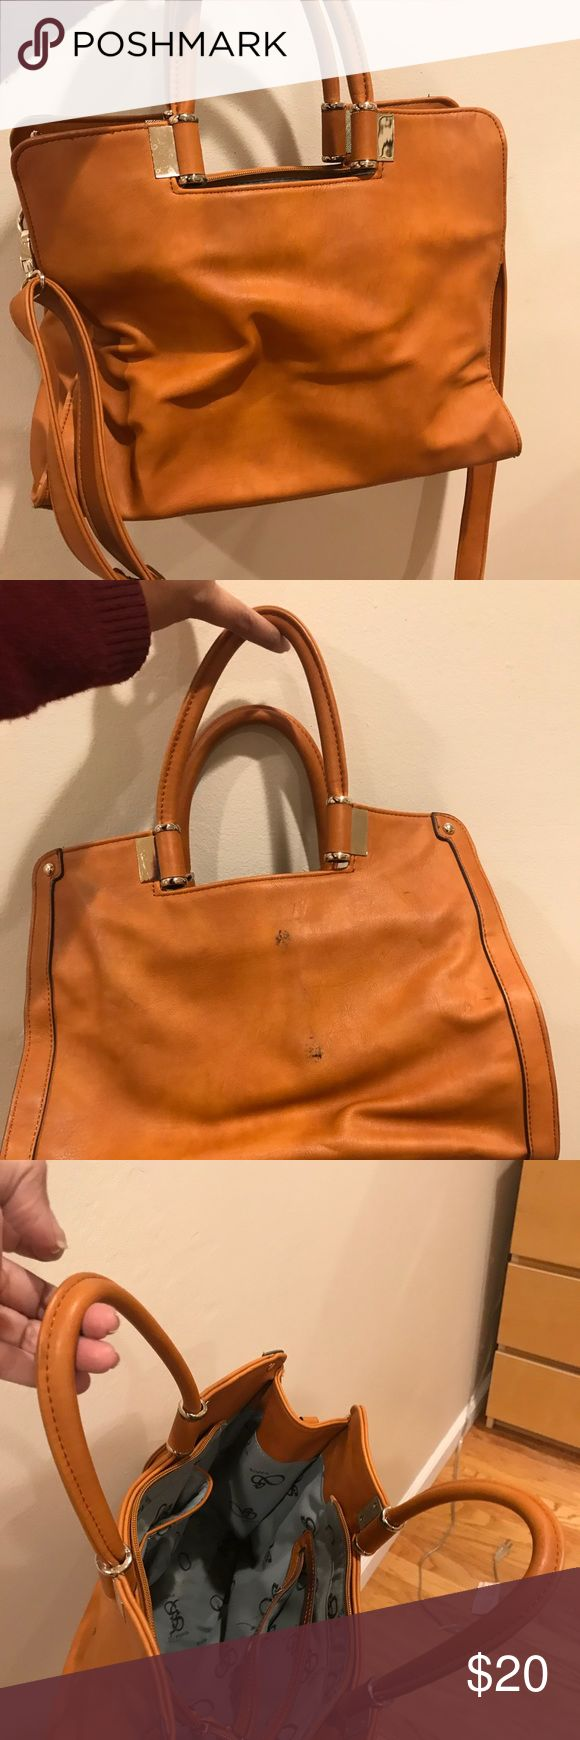 Segolene Paris - box medium tote in mustard color This tote is lightly used.  Has  couple of ink marks on the side...they are pictured above.  13 once laptop can fit in this. Segolene Paris Bags Totes